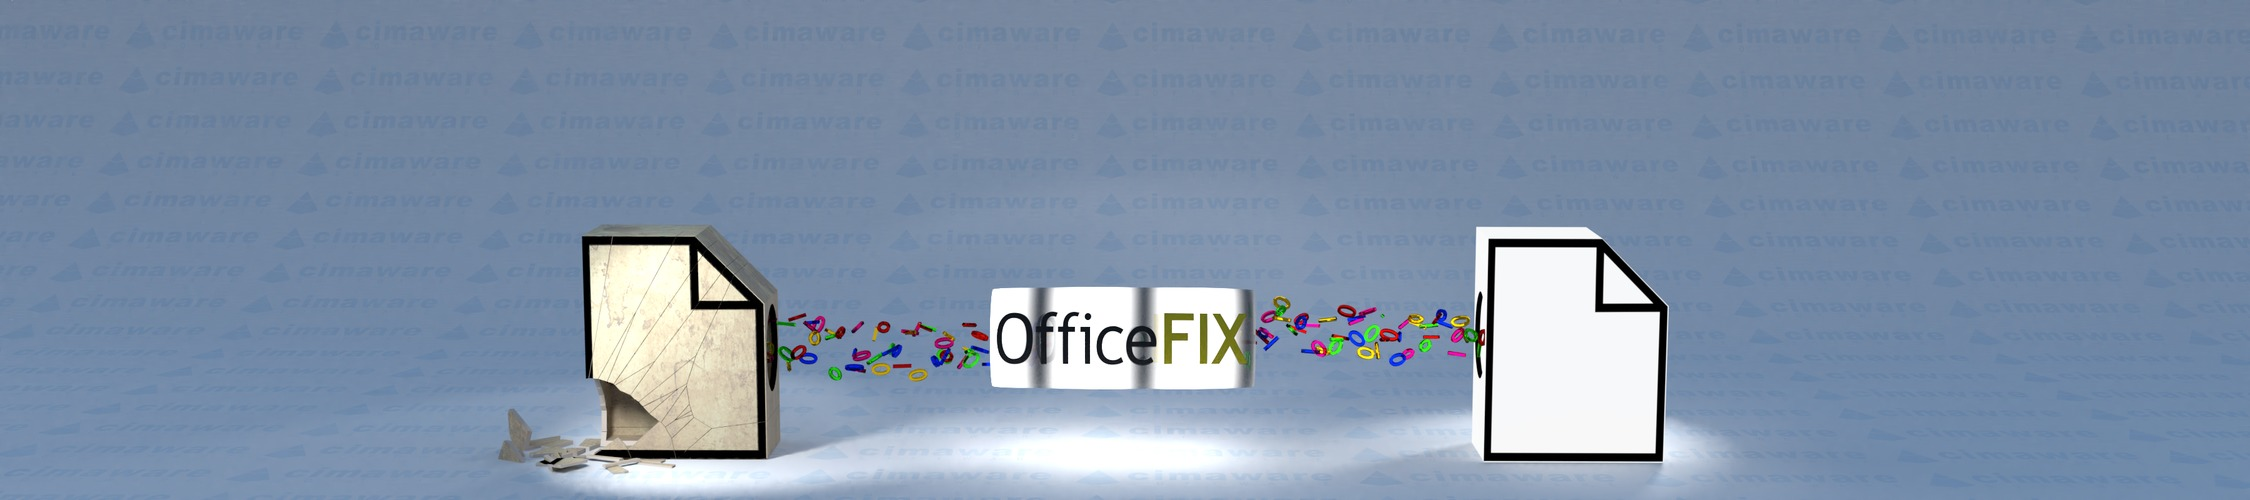 Our tools repair corrupt files by copying all undamaged content to a new error-free file.